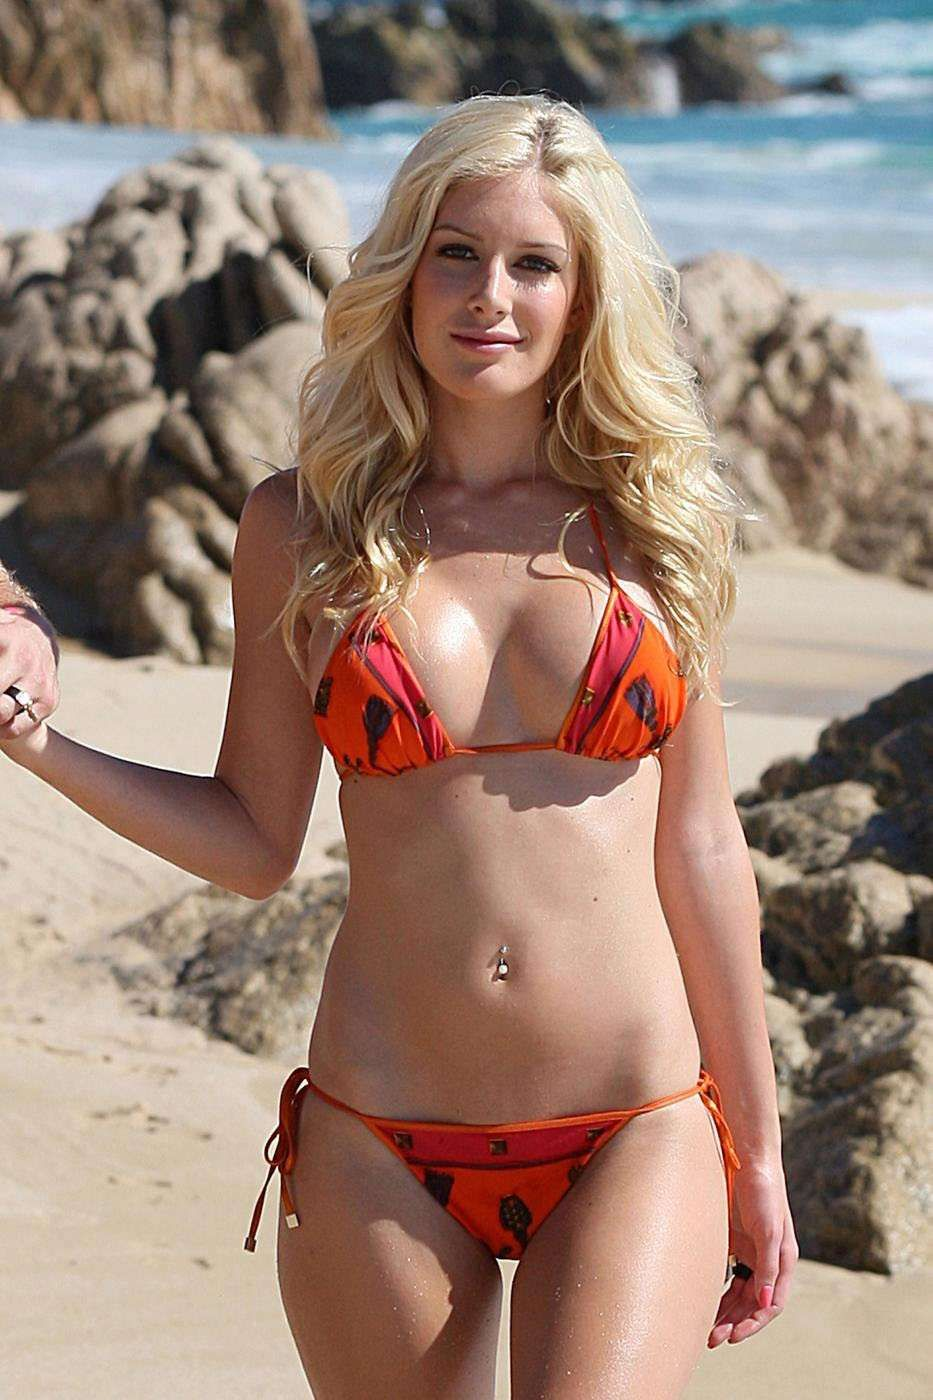 Leaked Heidi Montag nudes (47 photo), Instagram